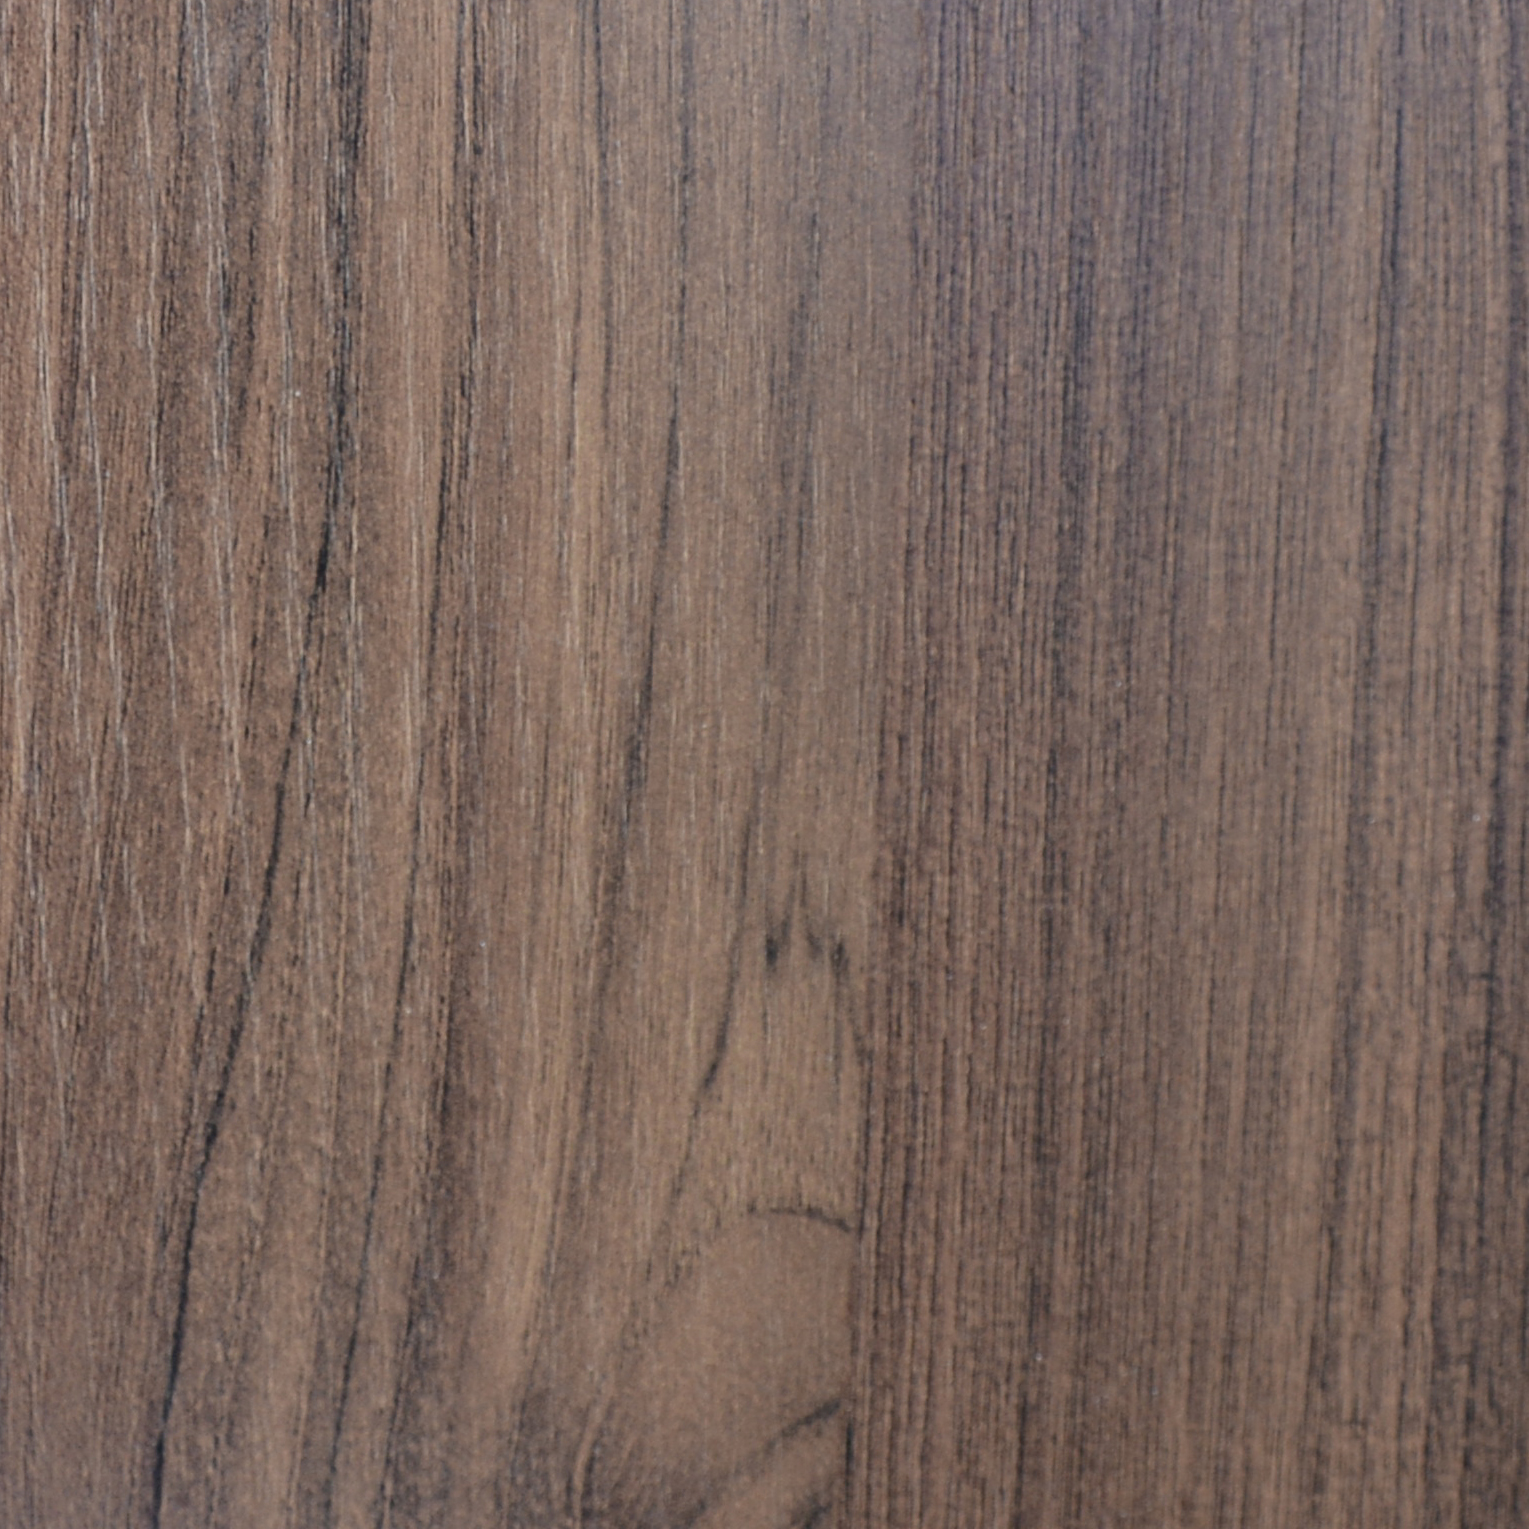 Sample of Sorrento, a standard finish for Creative Wood's FOCUS furniture collection